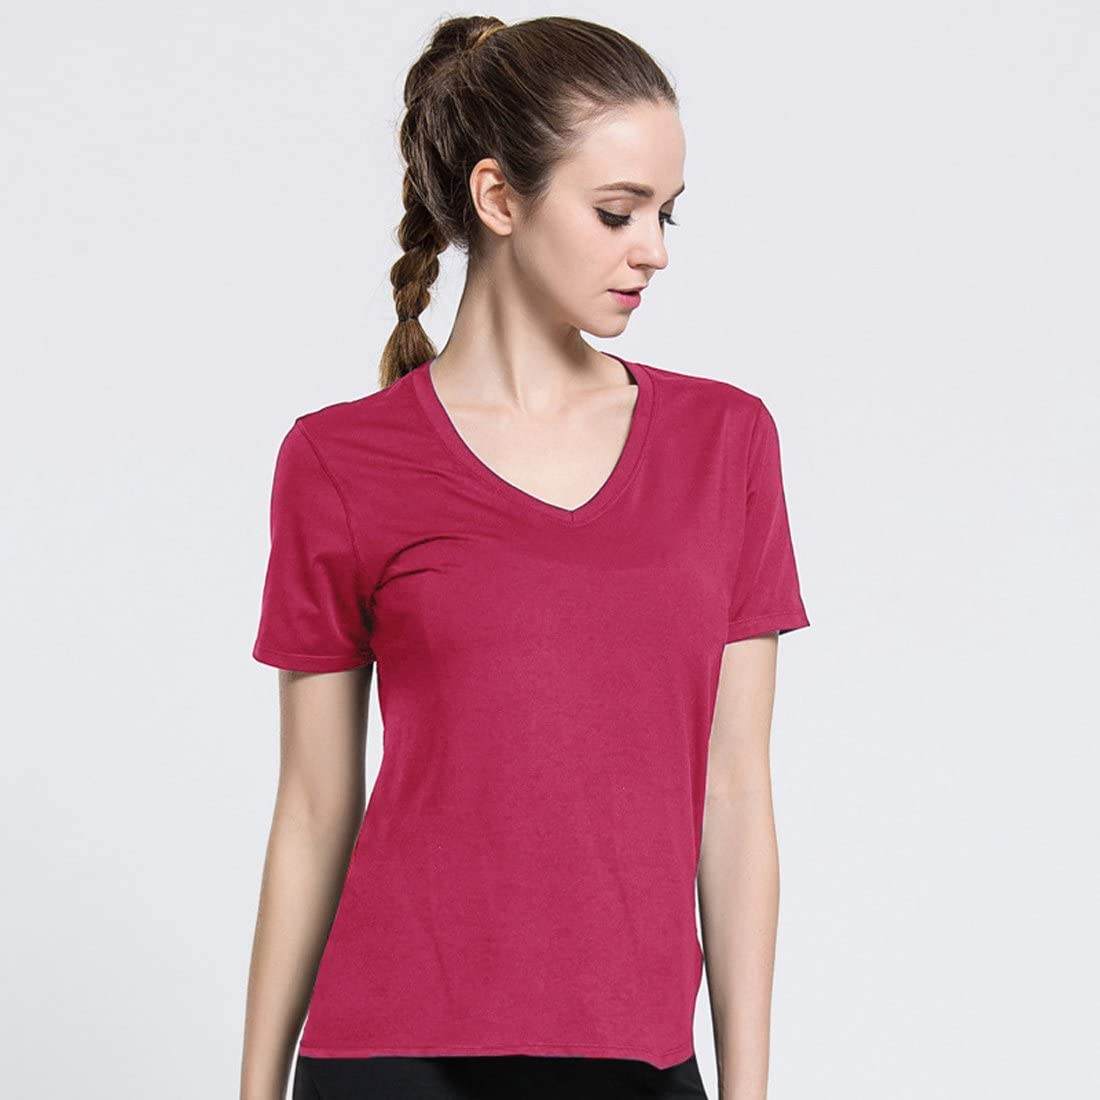 jeansian Mujer Yoga Pilates Deportiva Workout Camisetas T-Shirt Breathable Tops SWT240